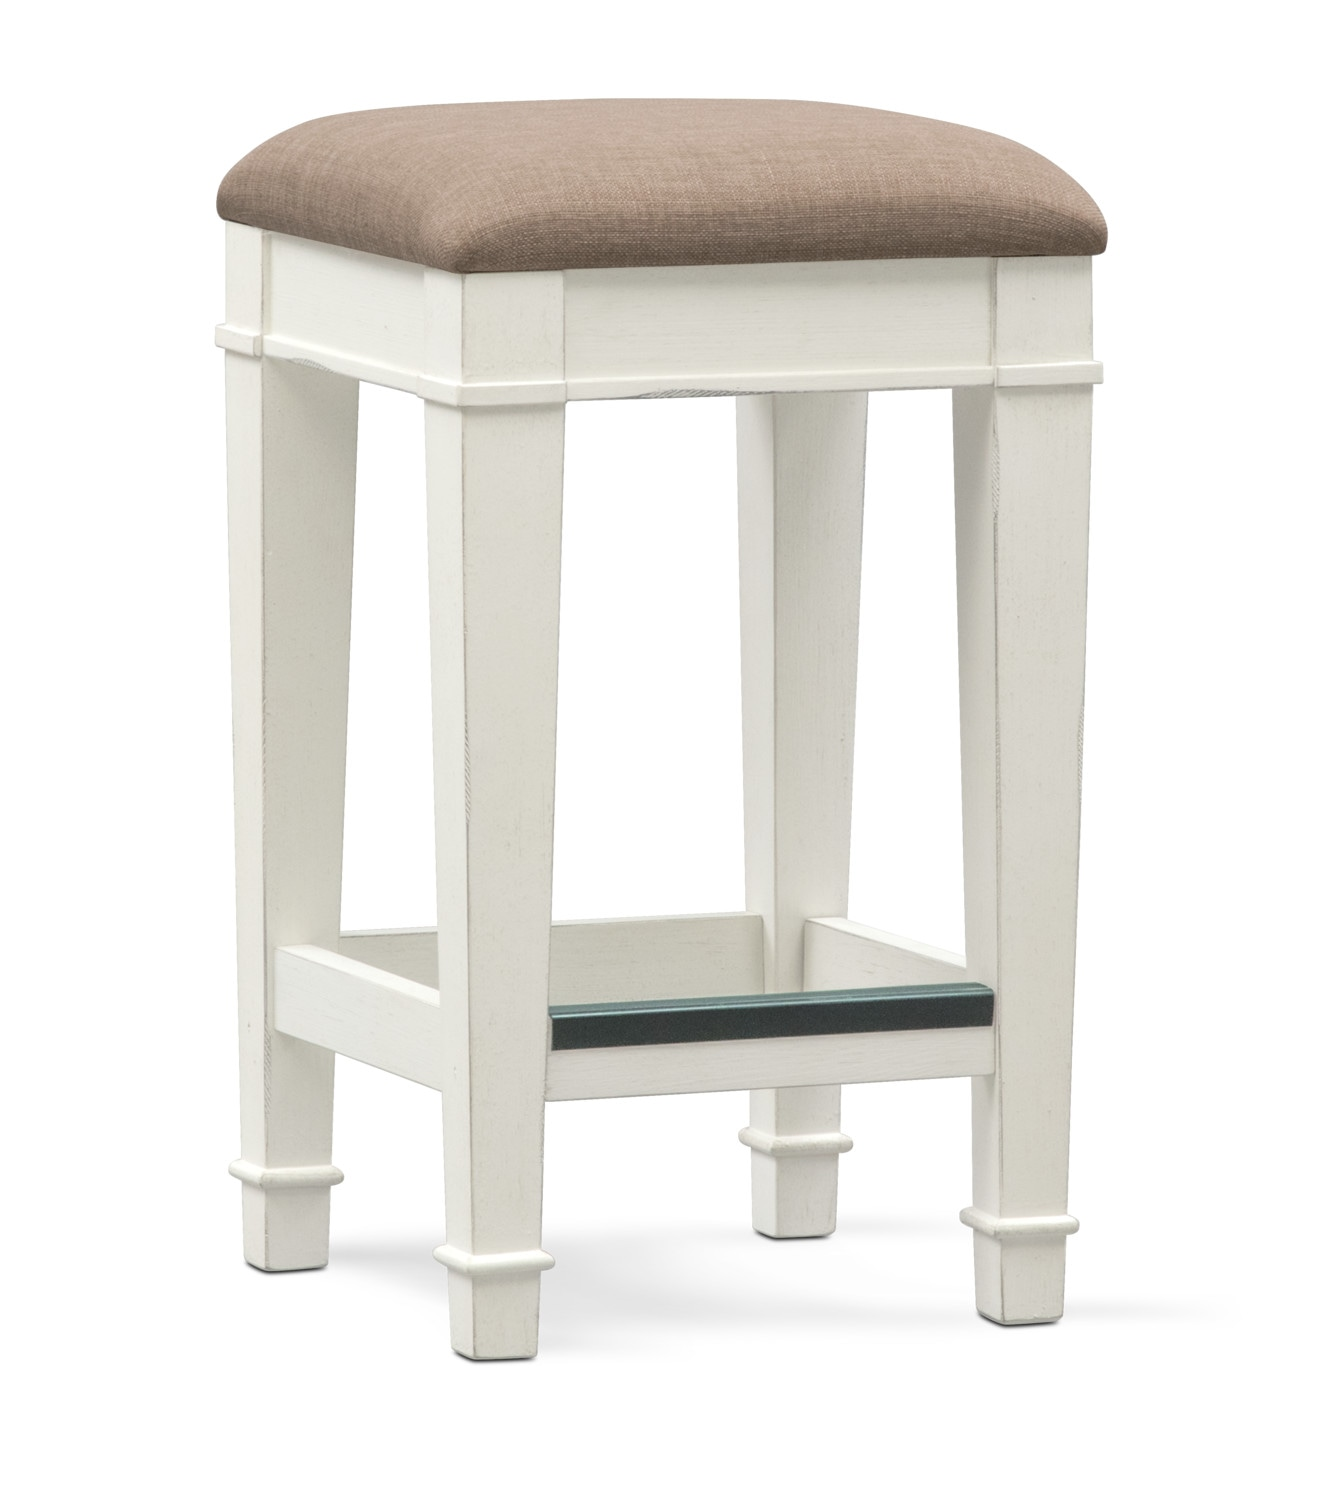 waverly sofa table and stools white american signature furniture room essentials accent instructions click change astoria dining gallerie art ikea decor unique lamps patio